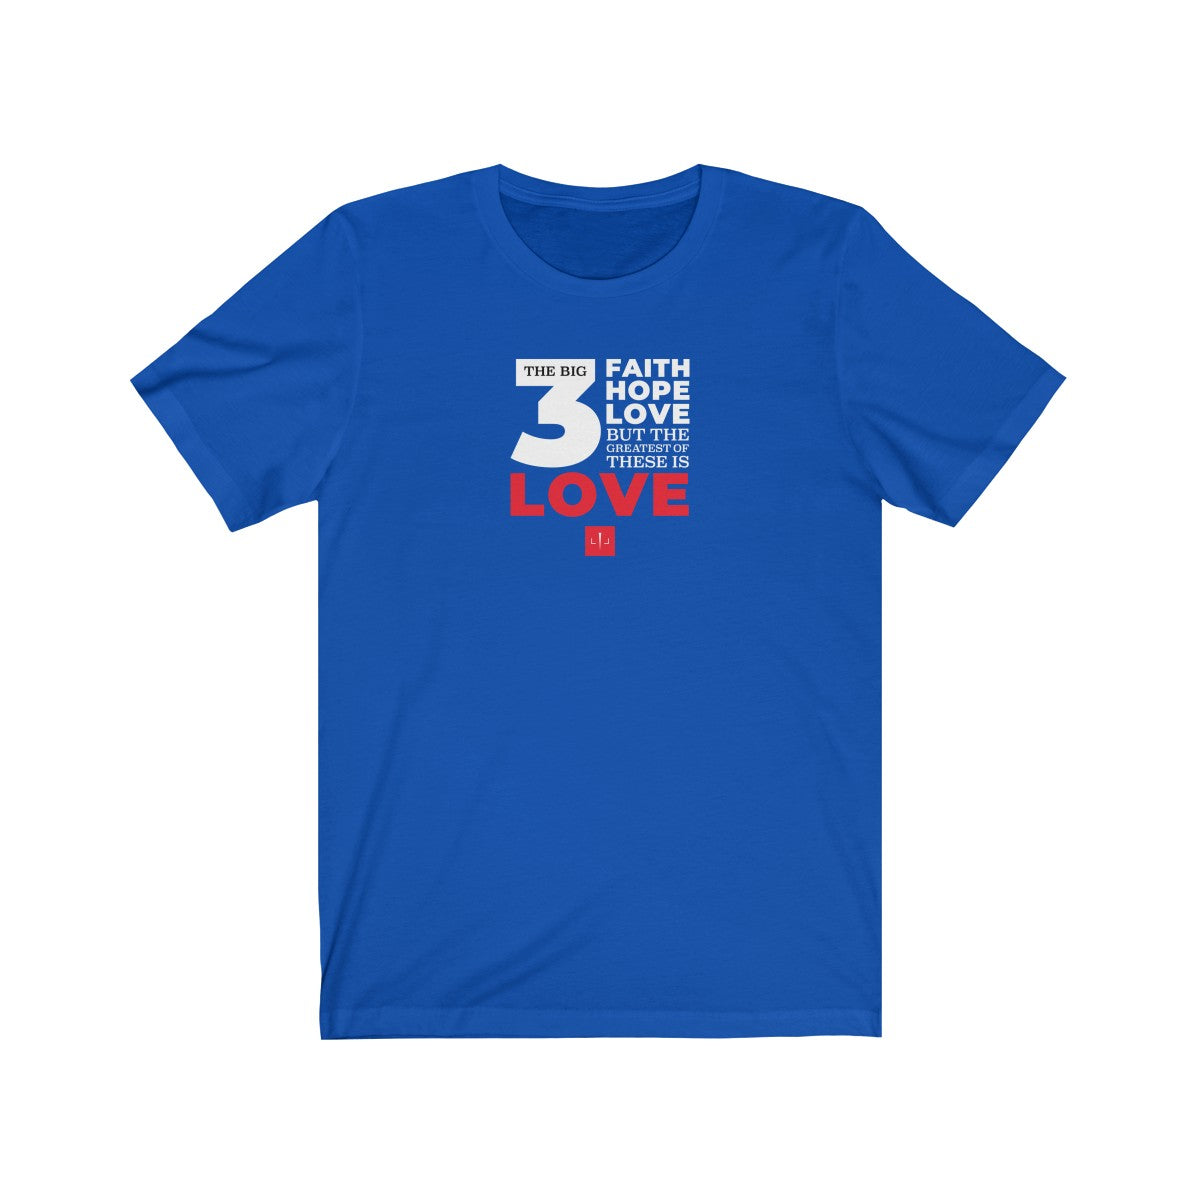 The Big 3 Unisex Jersey Short Sleeve Tee - DARK COLORS